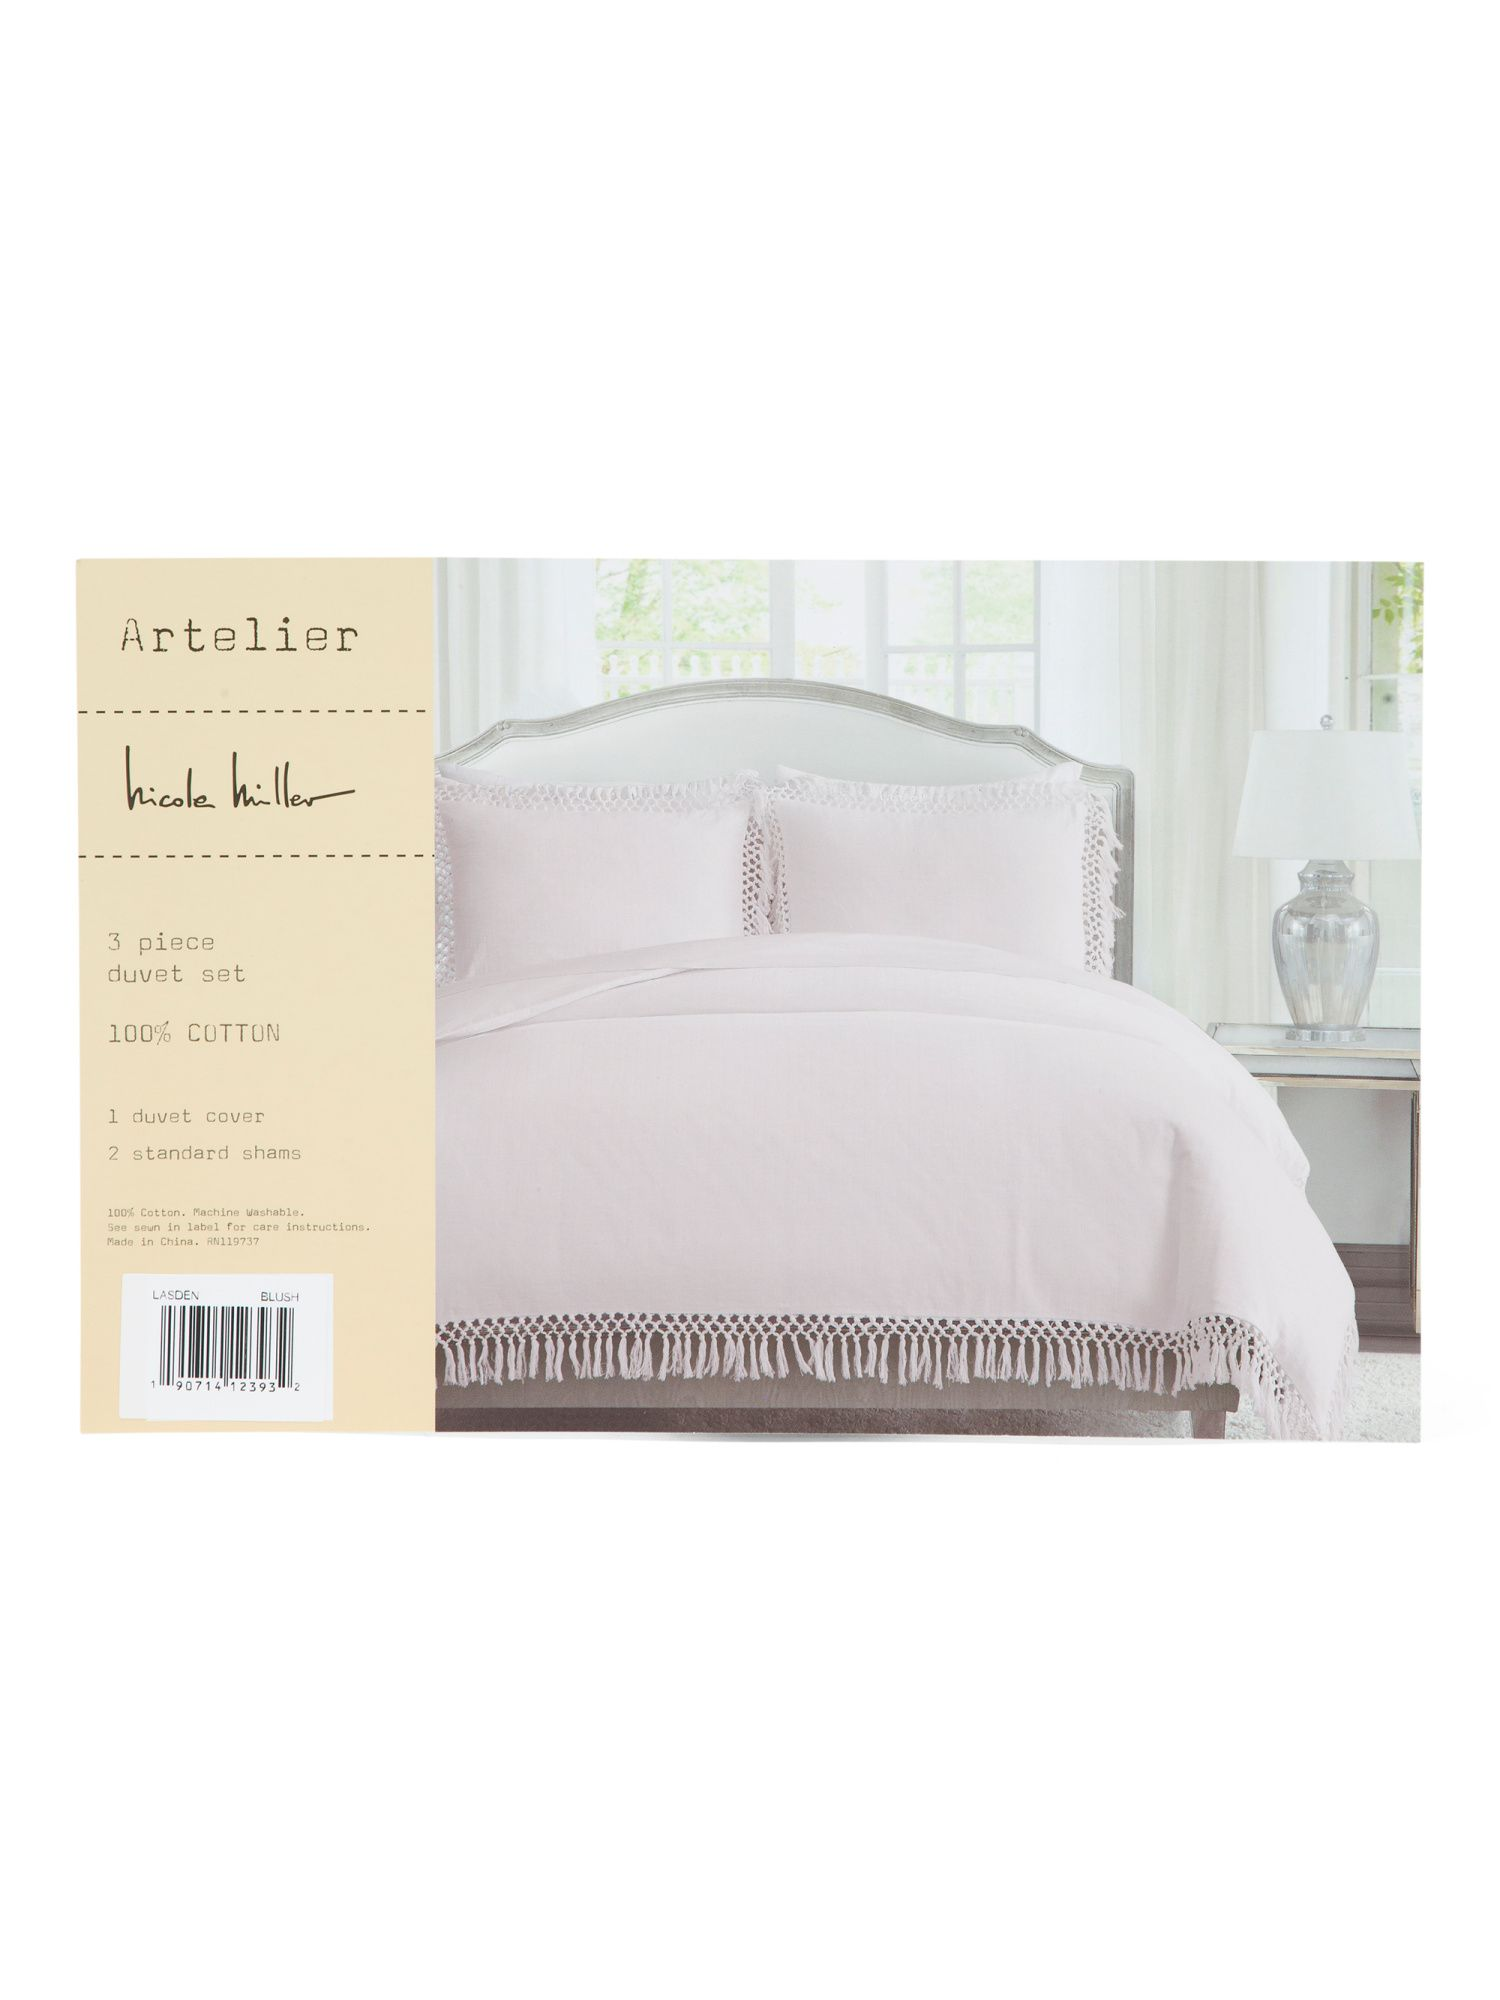 3pc Lasden Duvet Set   Bedroom   T.J.Maxx | Duvet sets, Bedroom